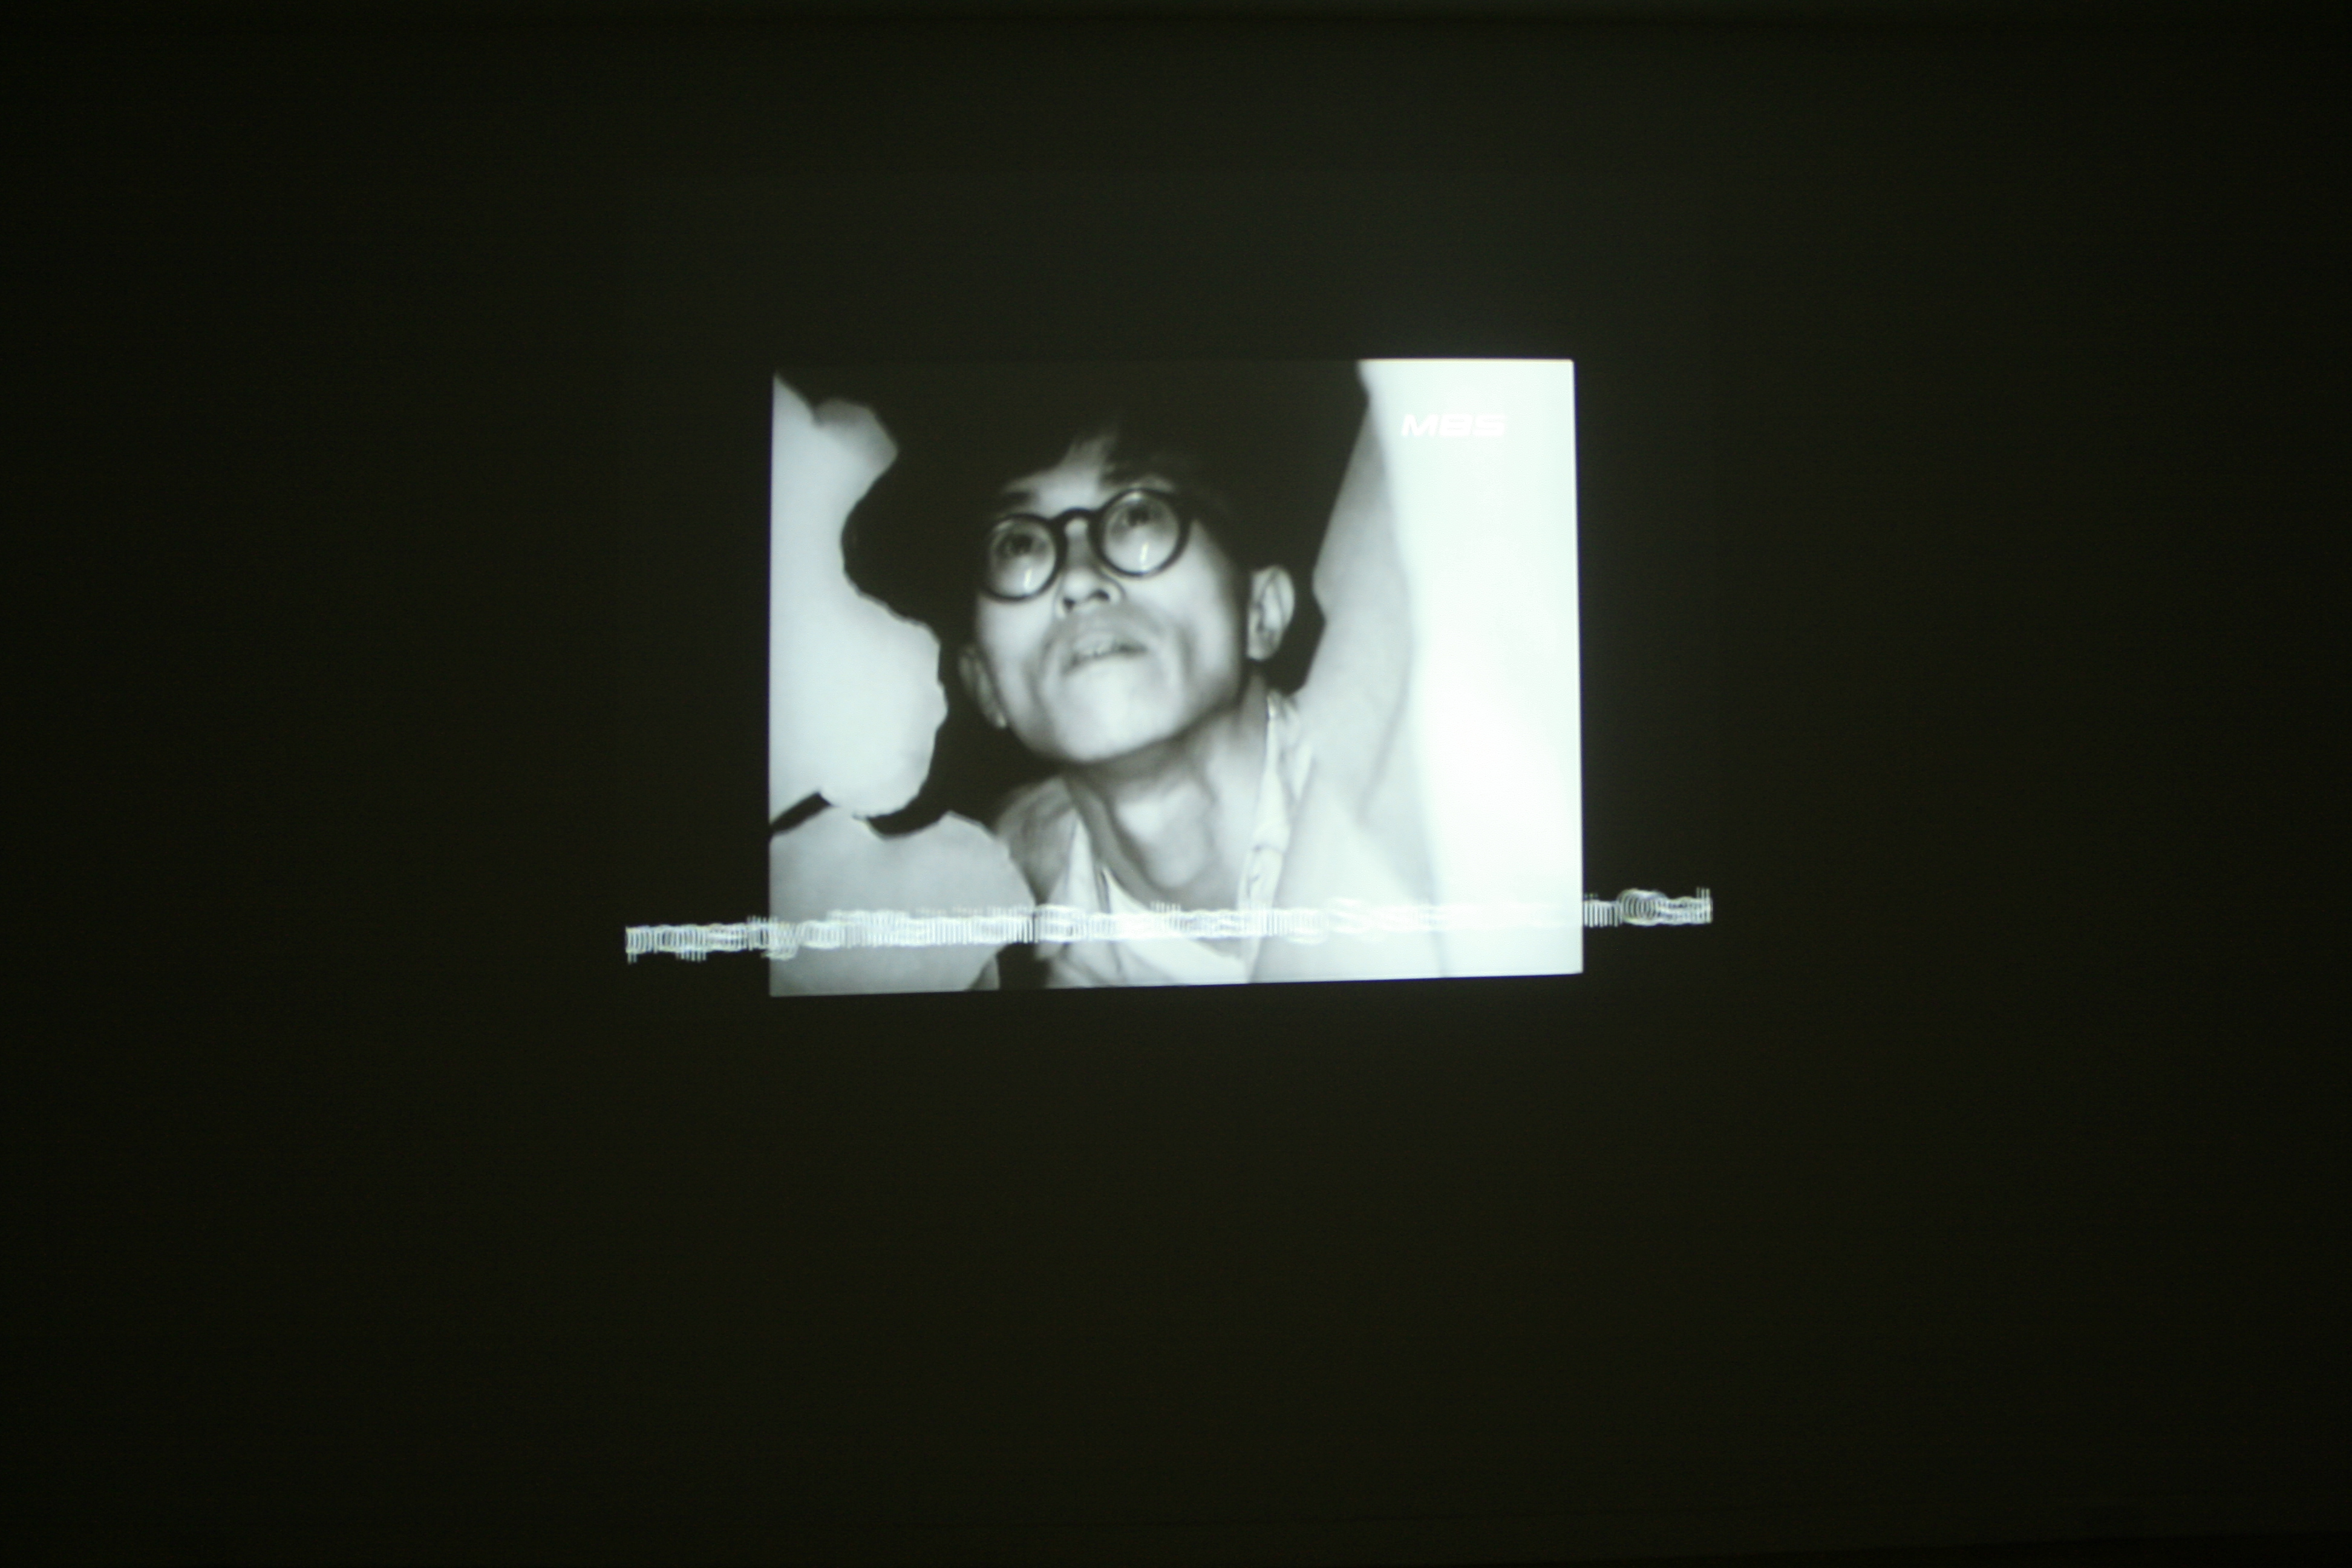 Photograph 1 from Gutai Documents: Film and Journal exhibition.